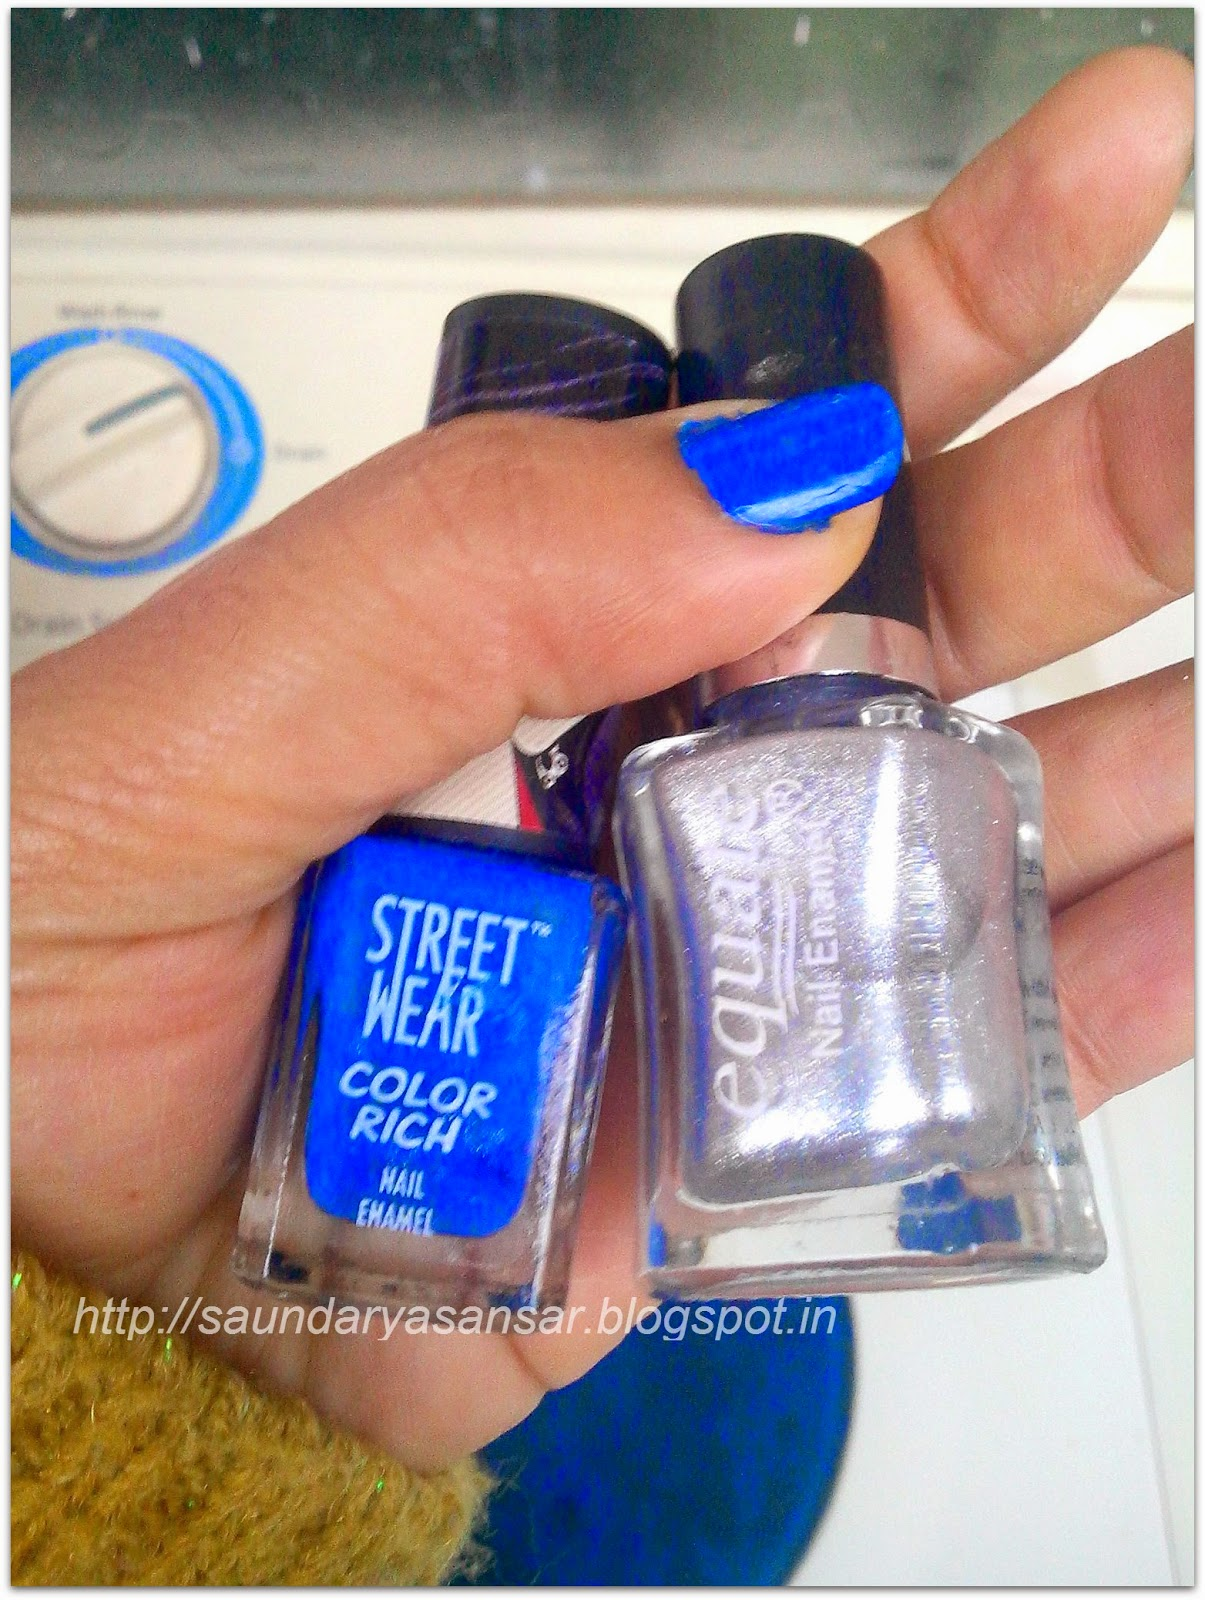 Street Wear Color Rich and Equate Nail Enamel review